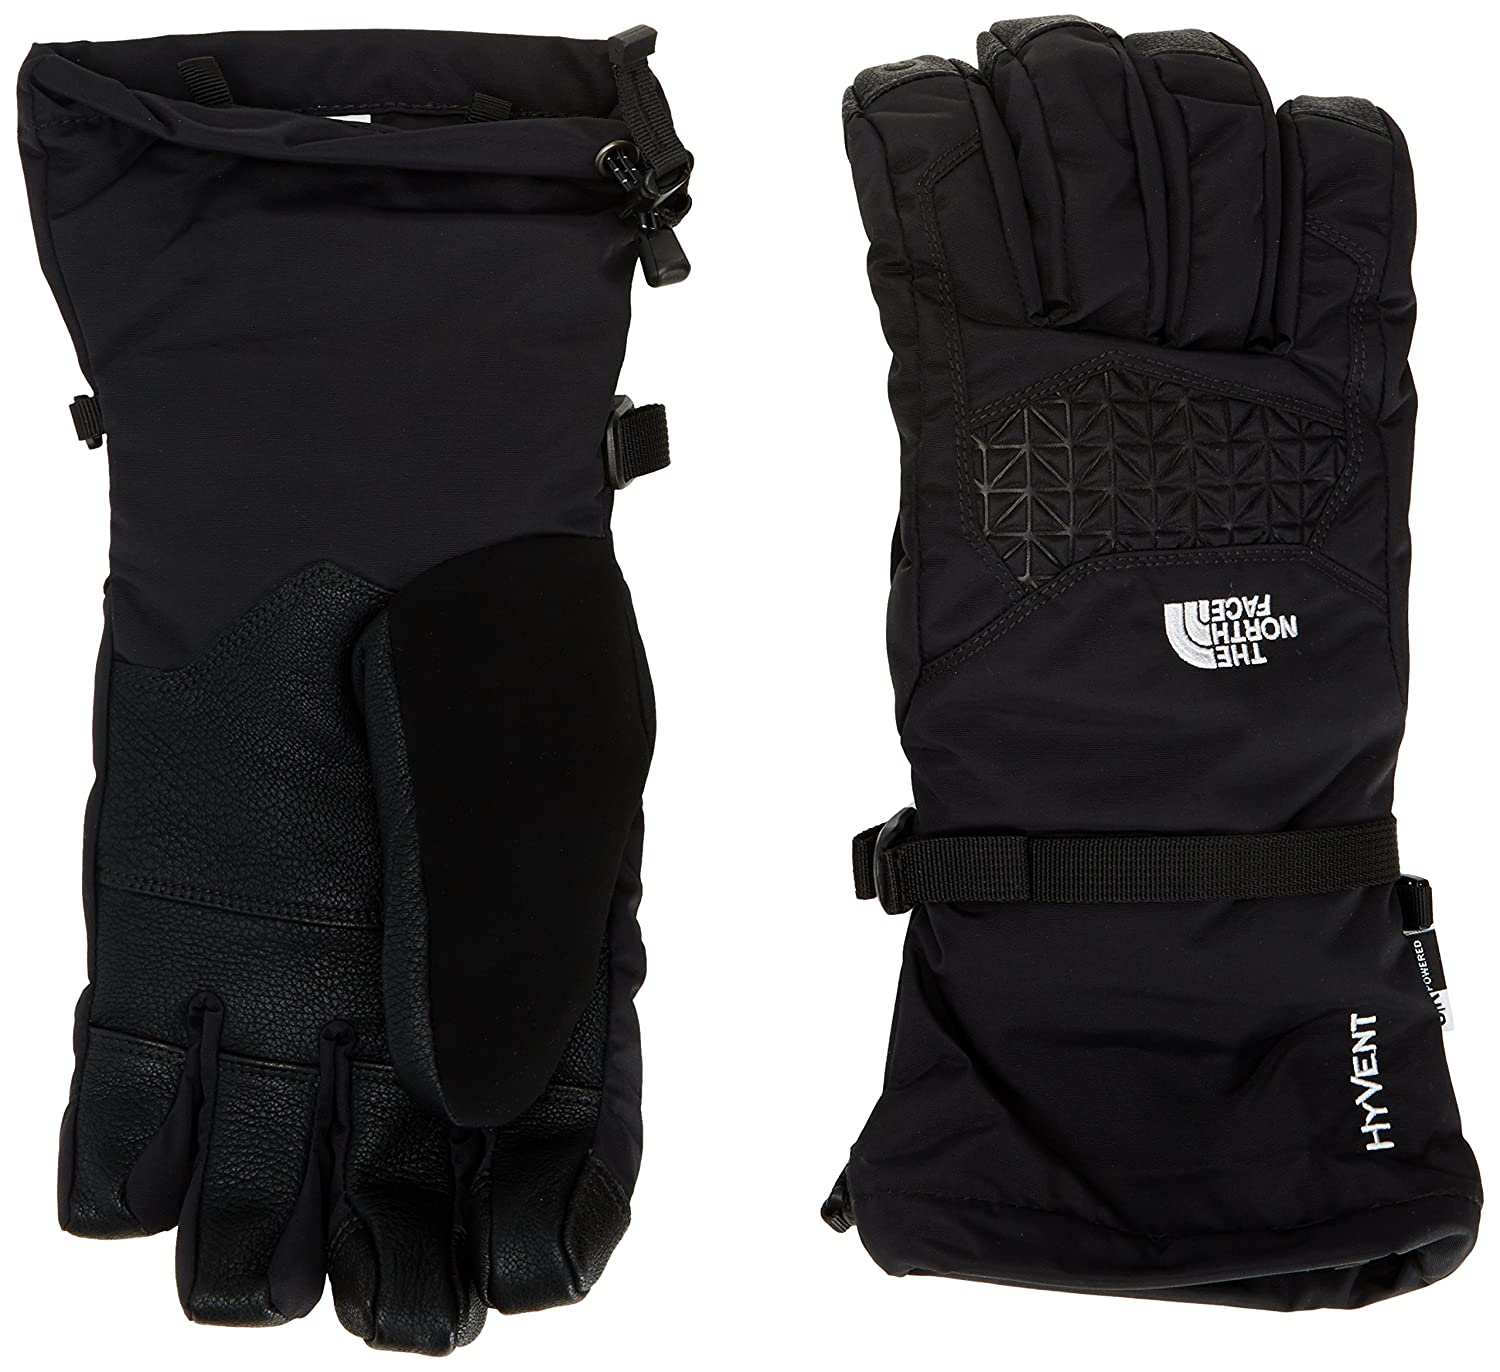 The North Face Men's Men's Etip Facet Glove TNF Black 2 Snowboarding Gloves MD T0A6STJK3